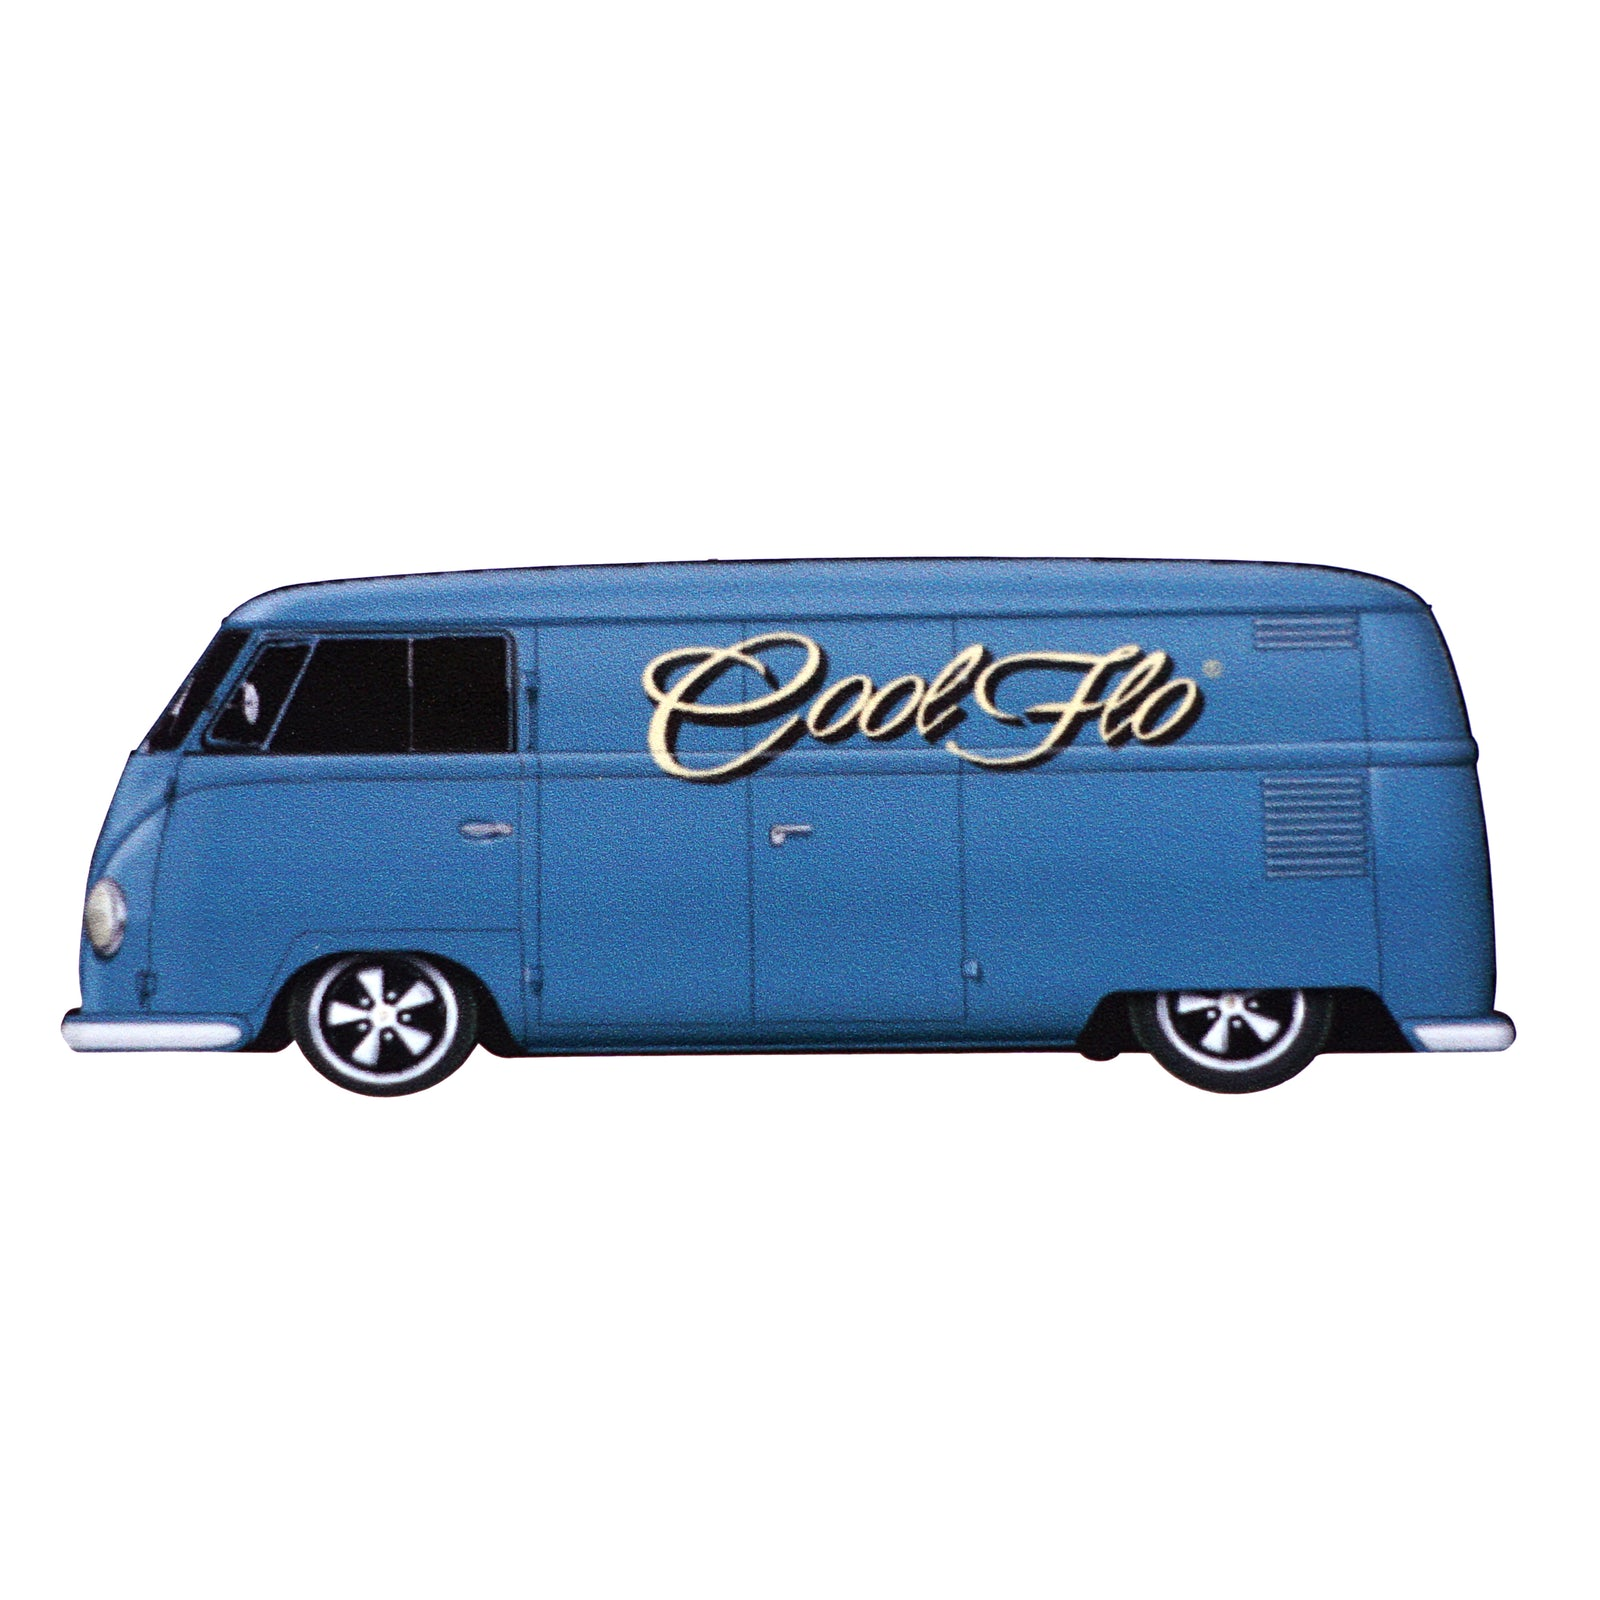 54 Blue Cool Flo Bus Decal - Cool Flo